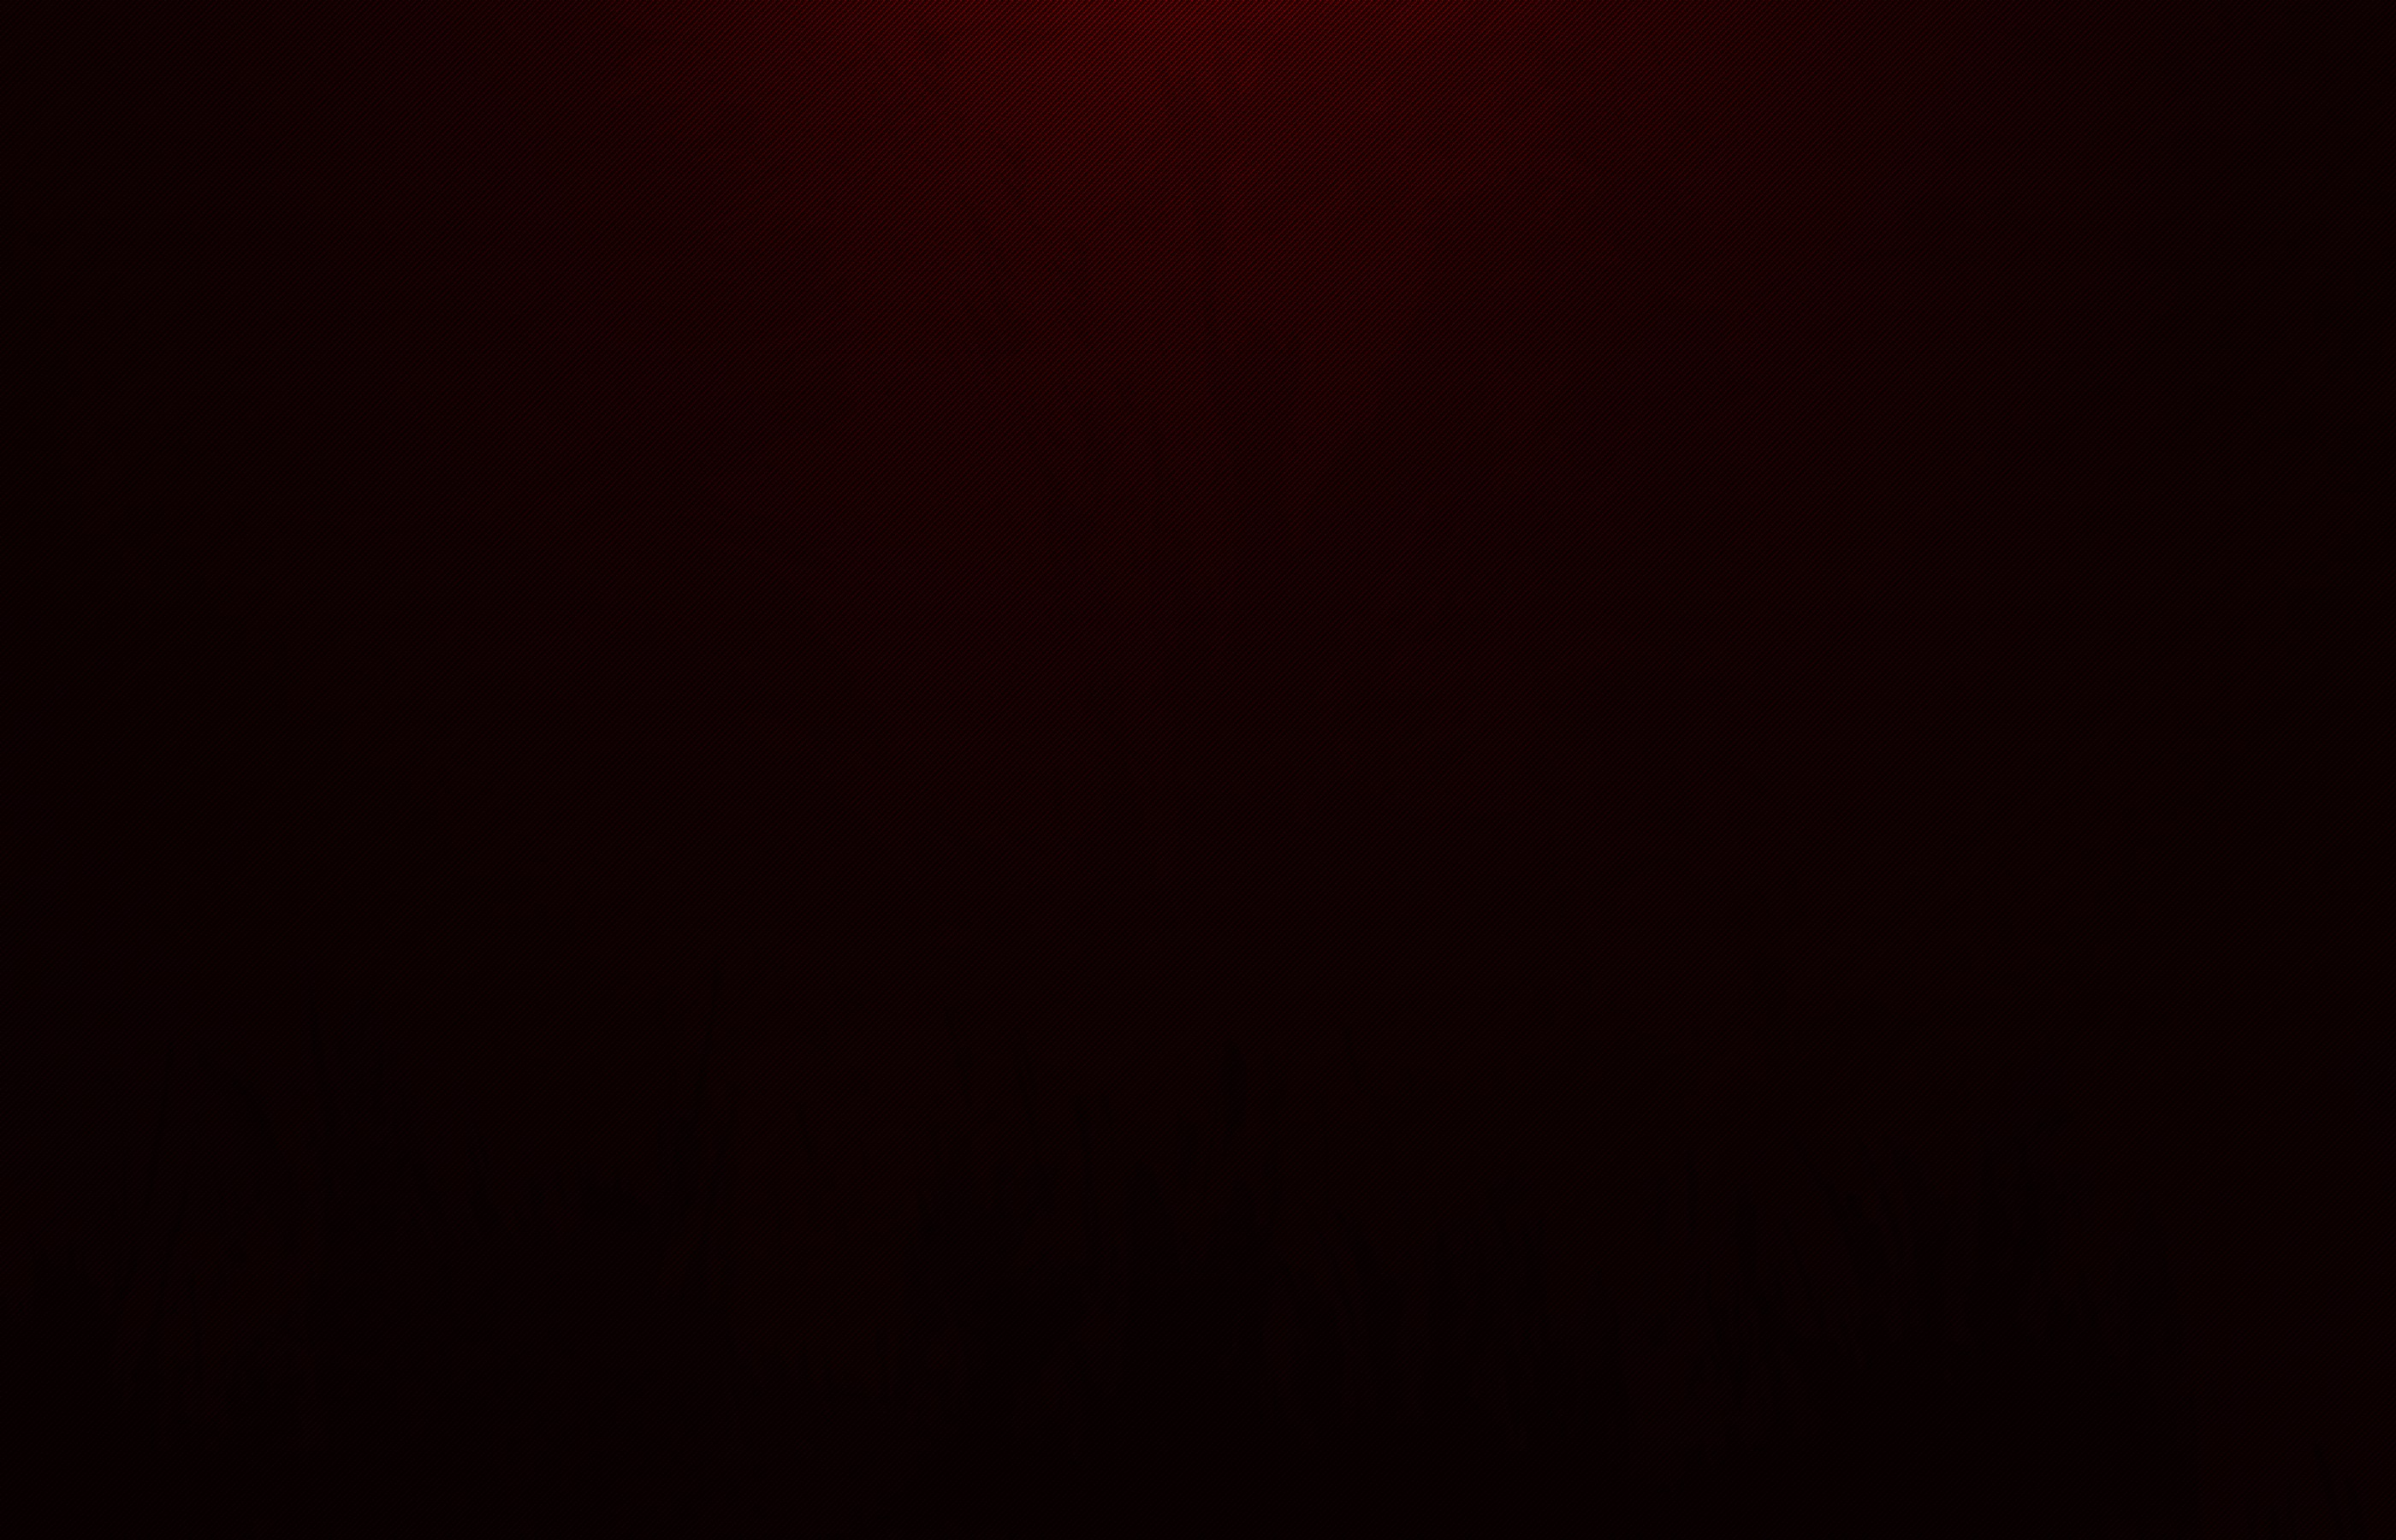 Dark Red Pattern Background Related Keywords amp Suggestions 2800x1800